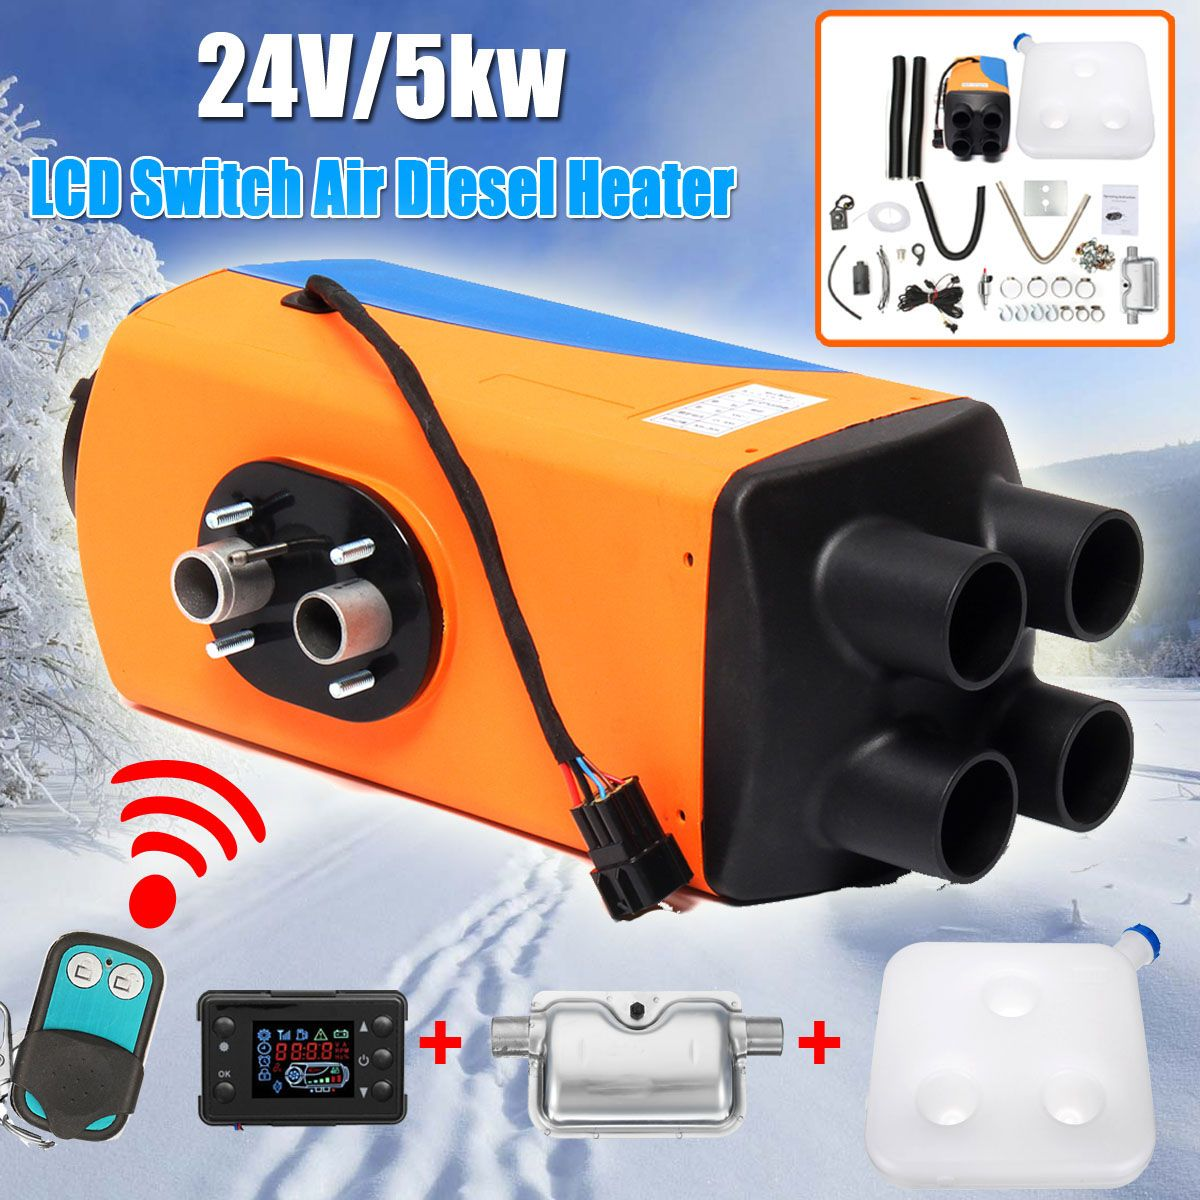 24V Car Heater 5KW Car Parking Air Diesels Fuel Heater 4-Holes 5000W for RV Boats Motorhome Trucks Trailer Car Accessories